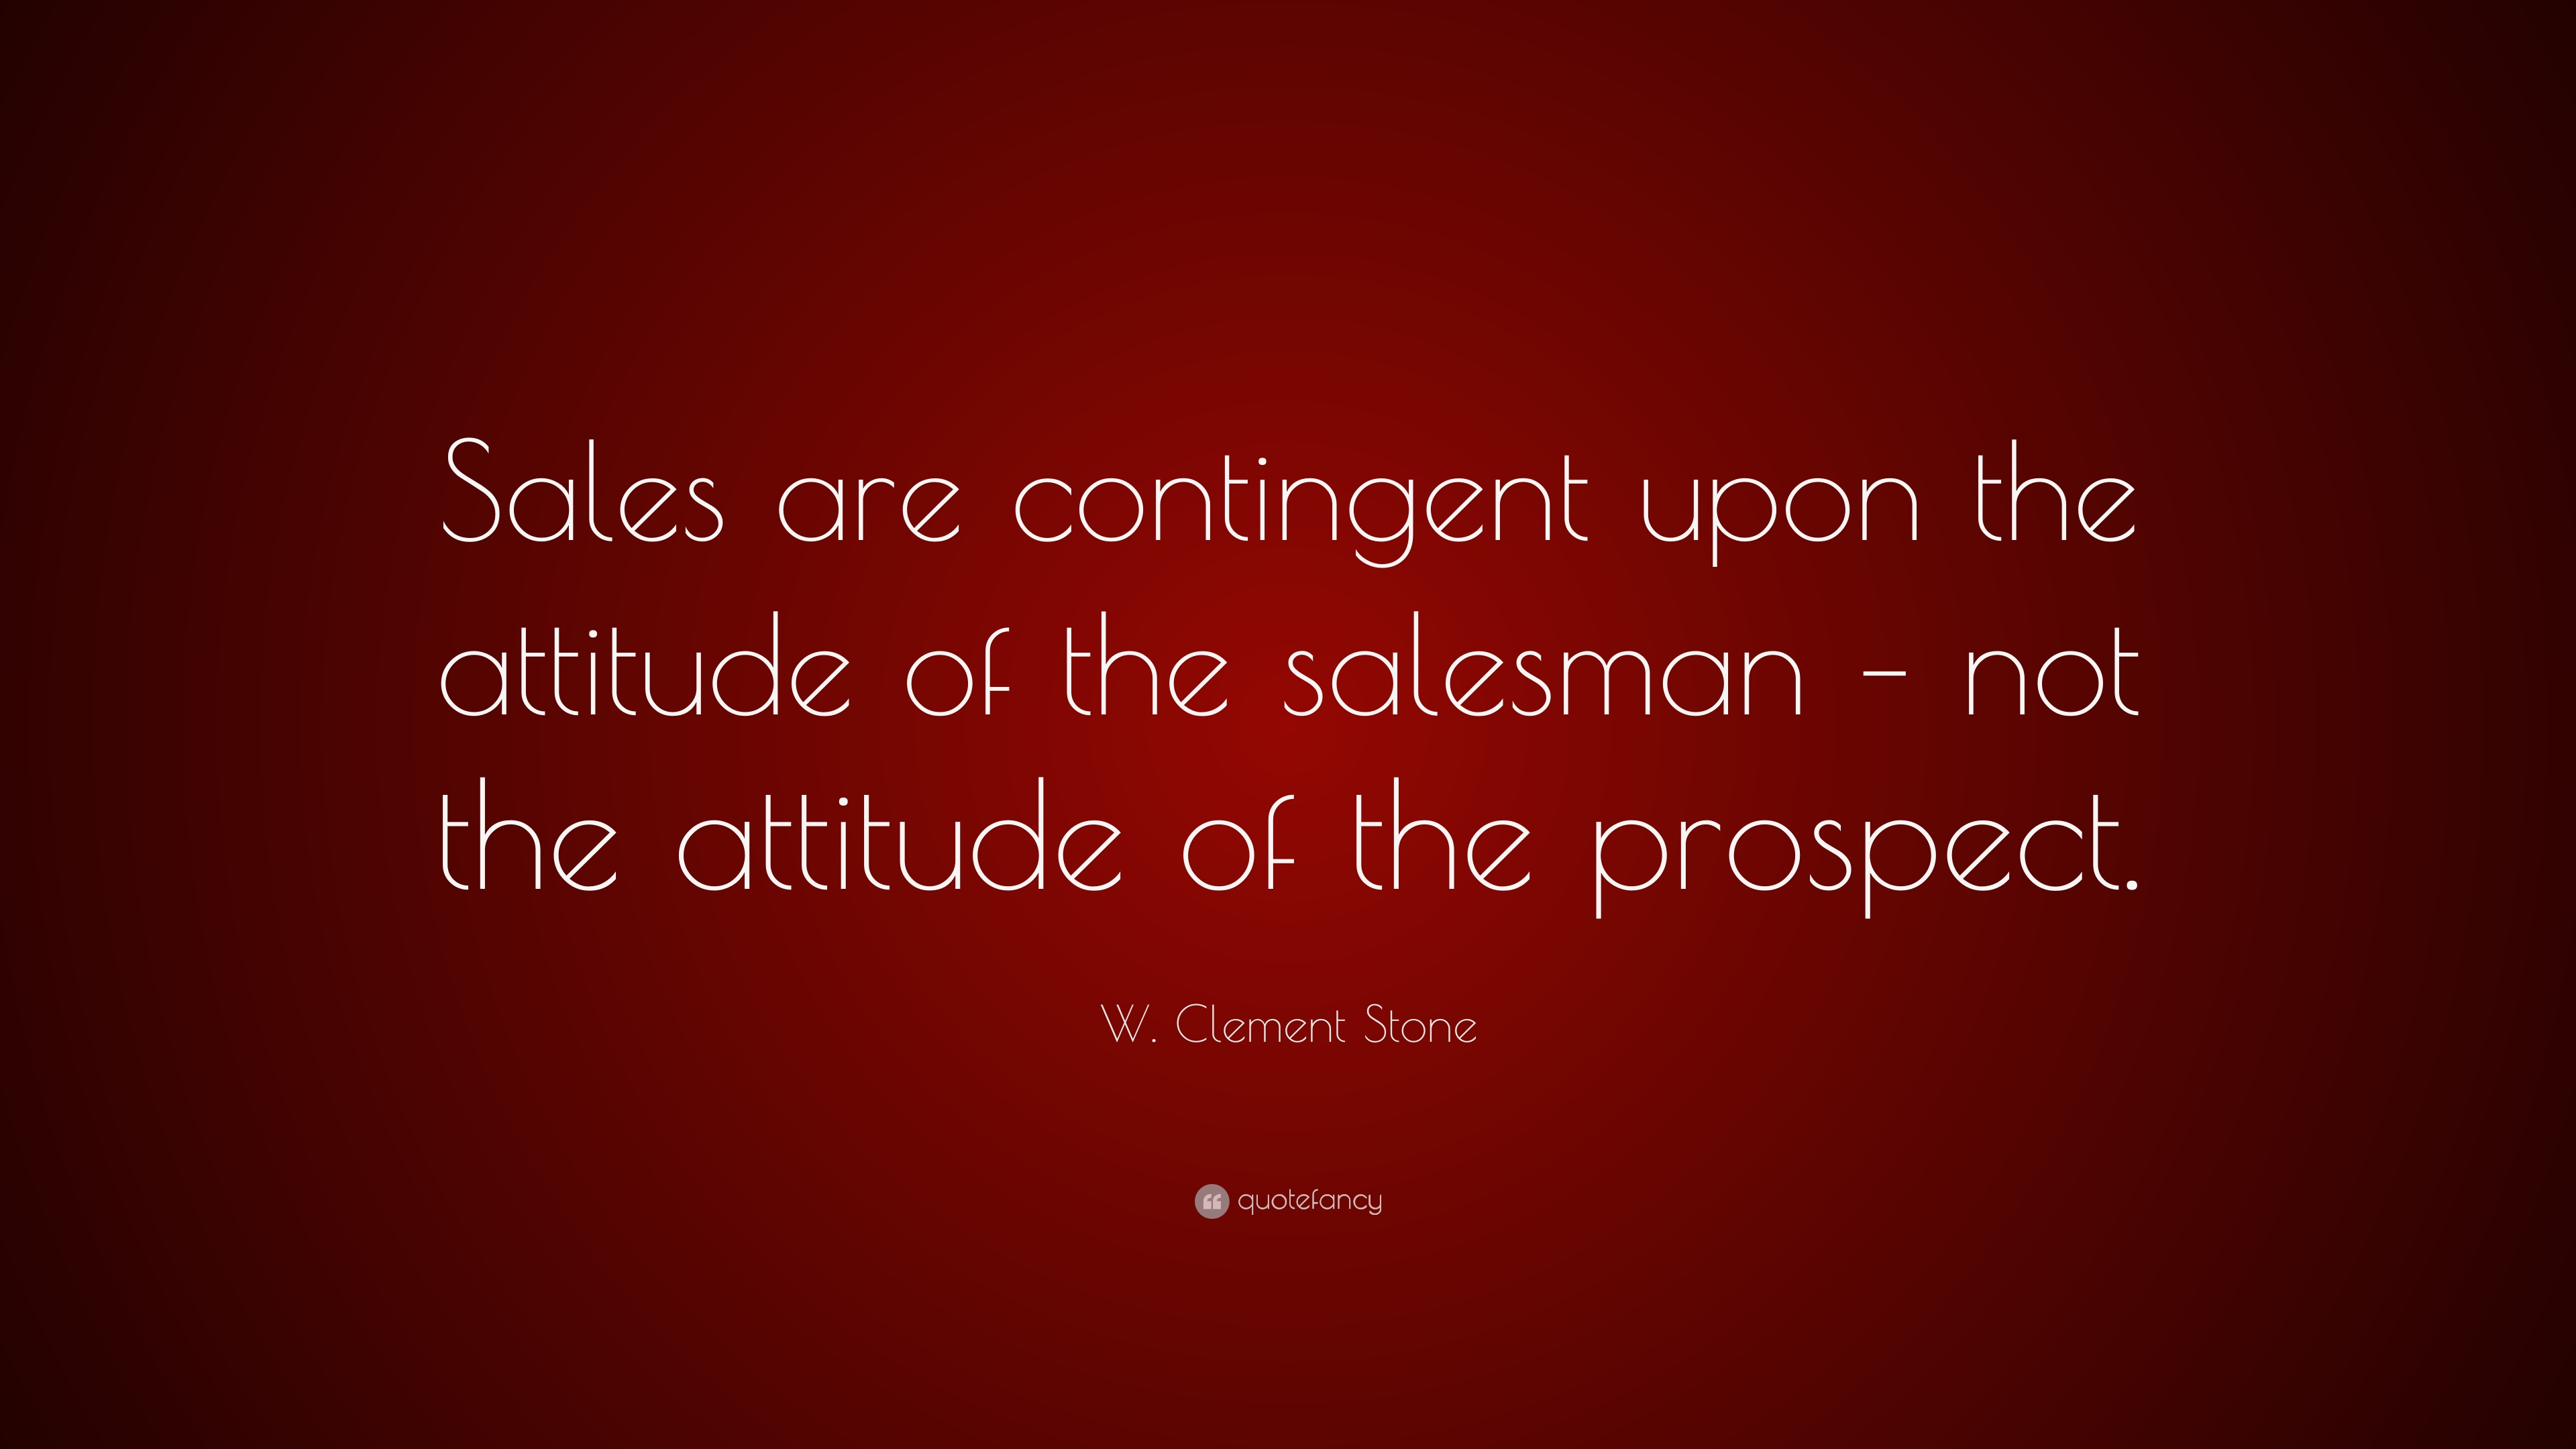 w clement stone quote sales are contingent upon the attitude of